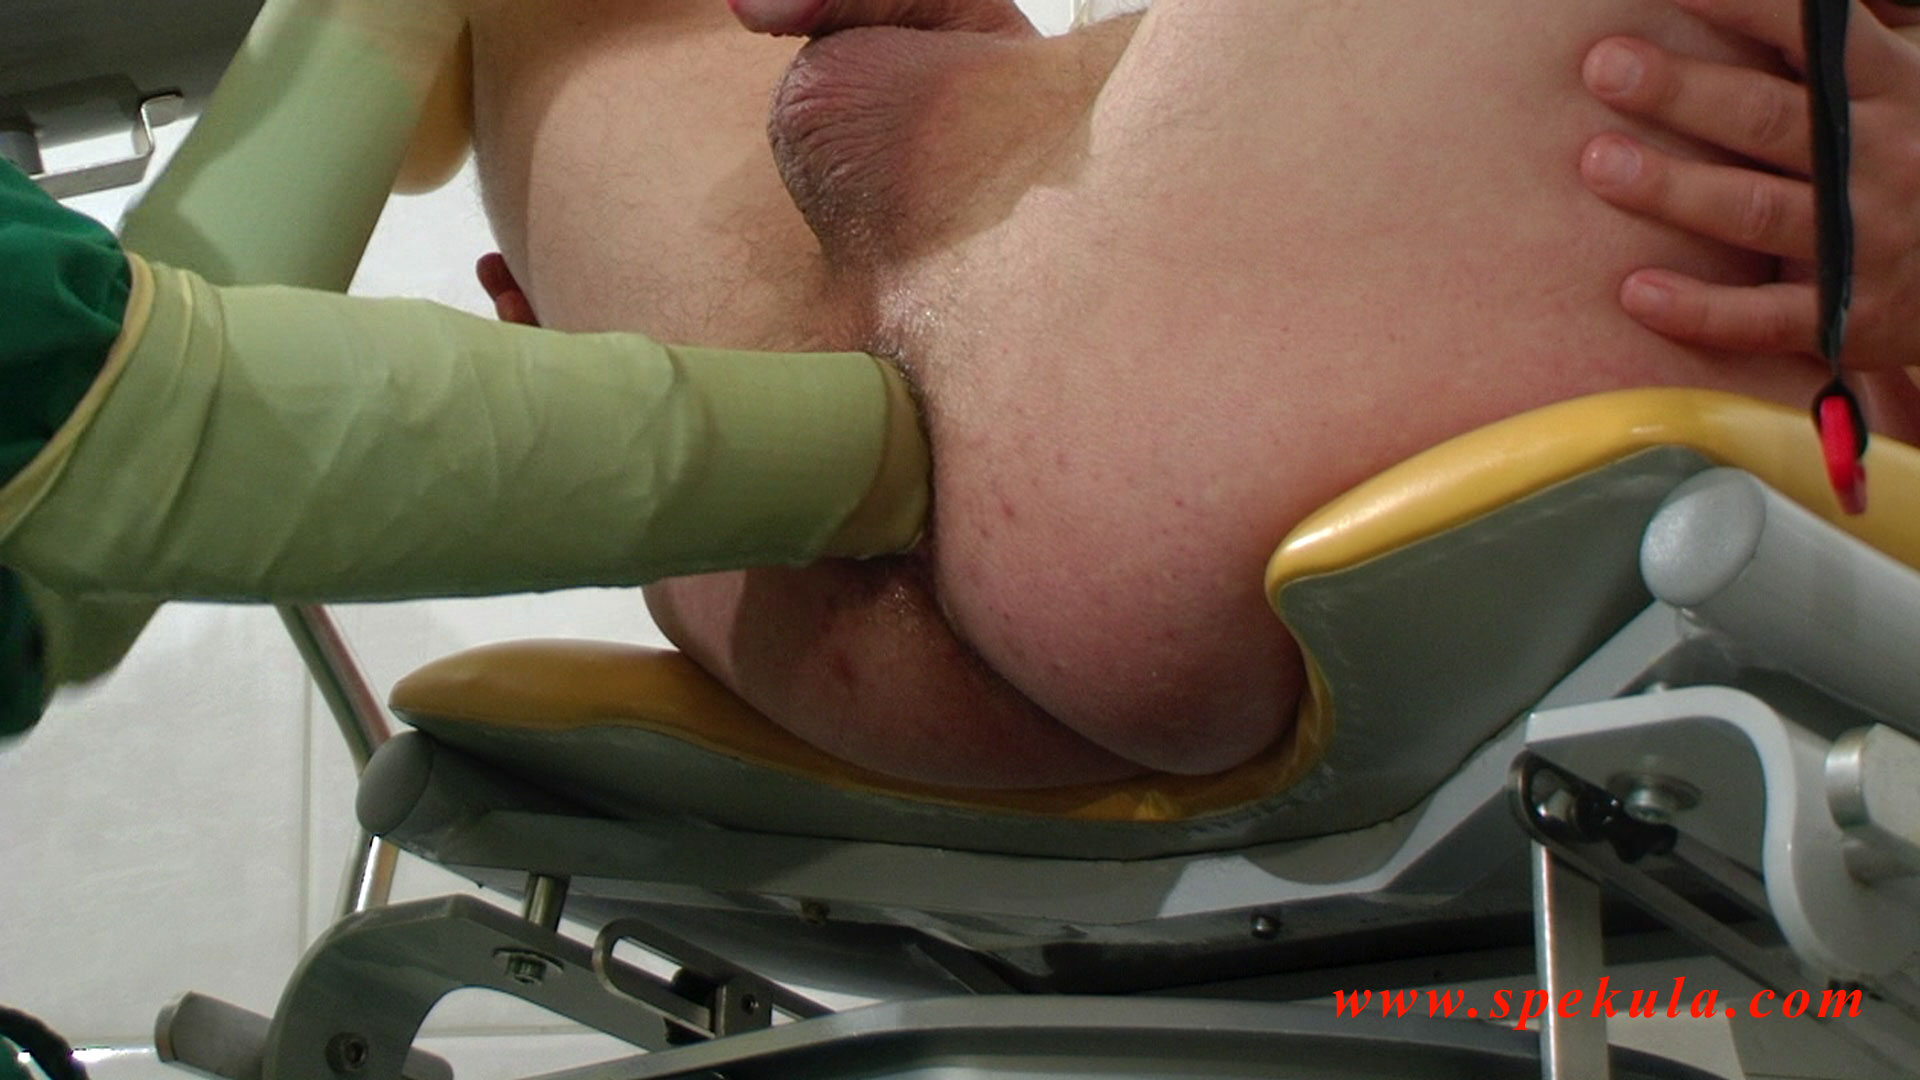 Woman bukkake video